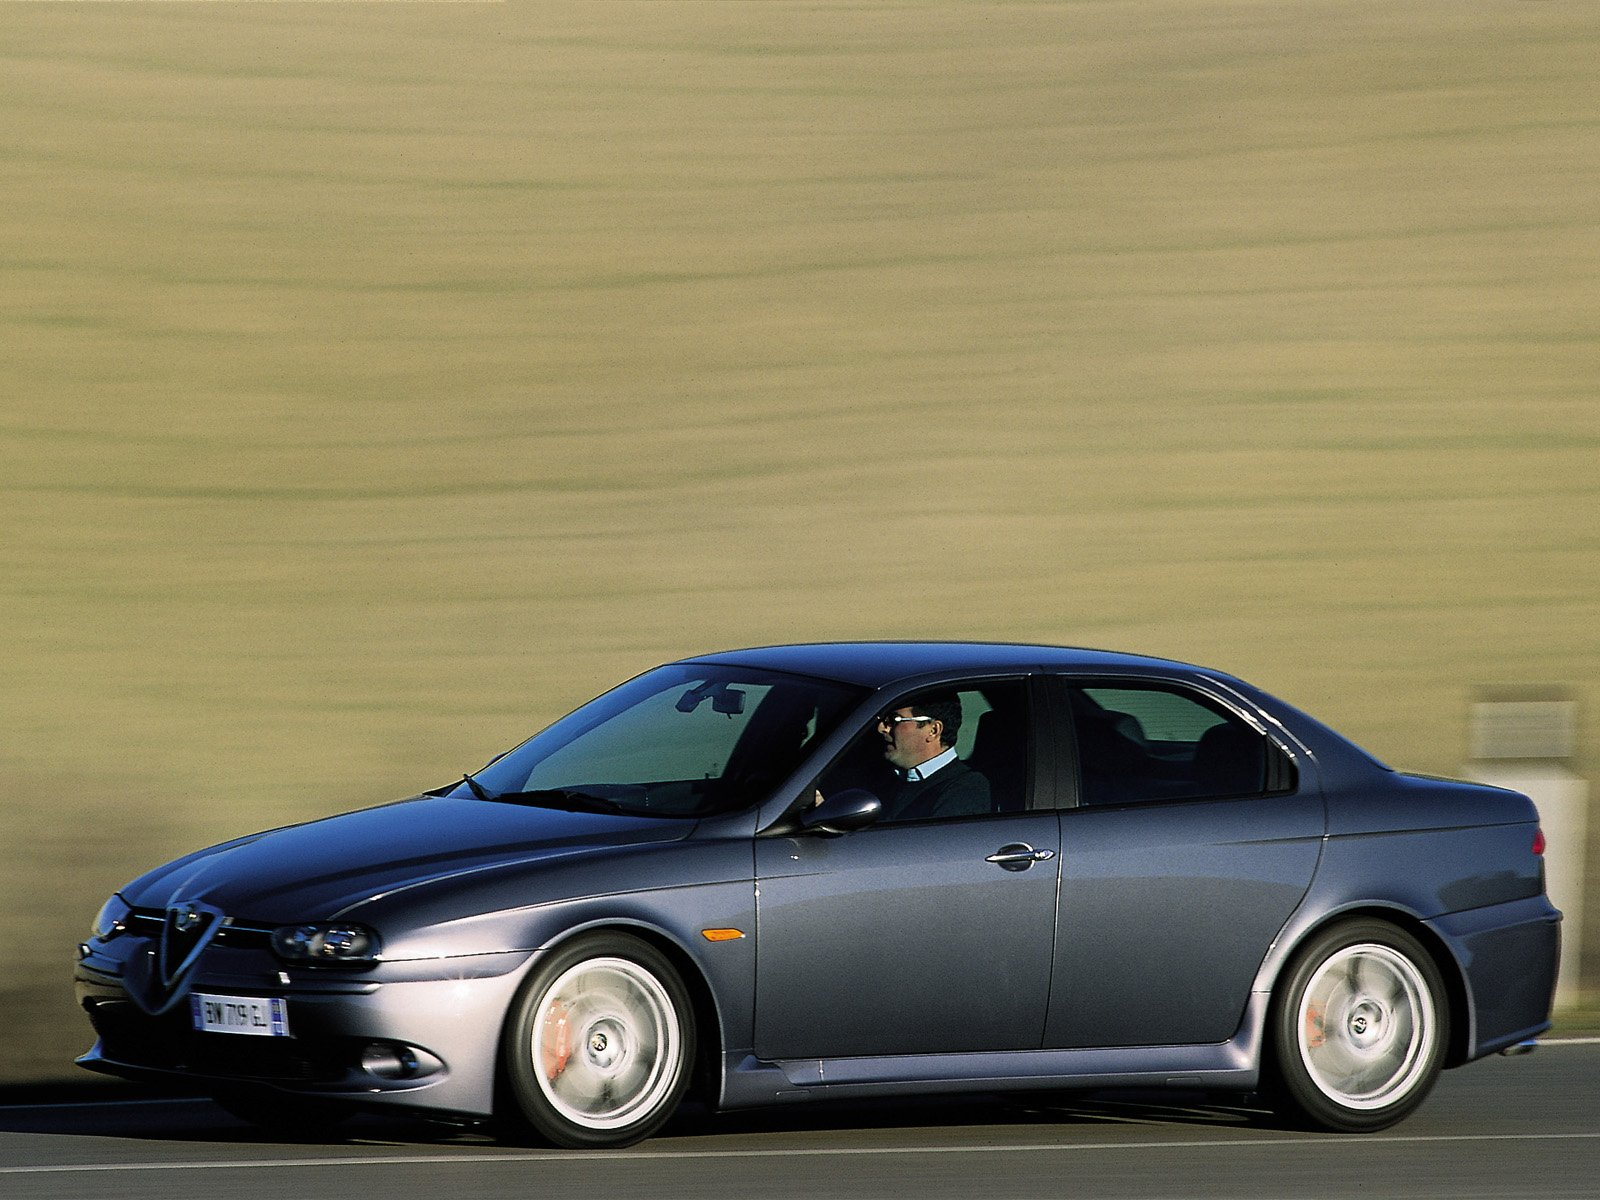 alfa romeo 156 gta photos photogallery with 29 pics. Black Bedroom Furniture Sets. Home Design Ideas